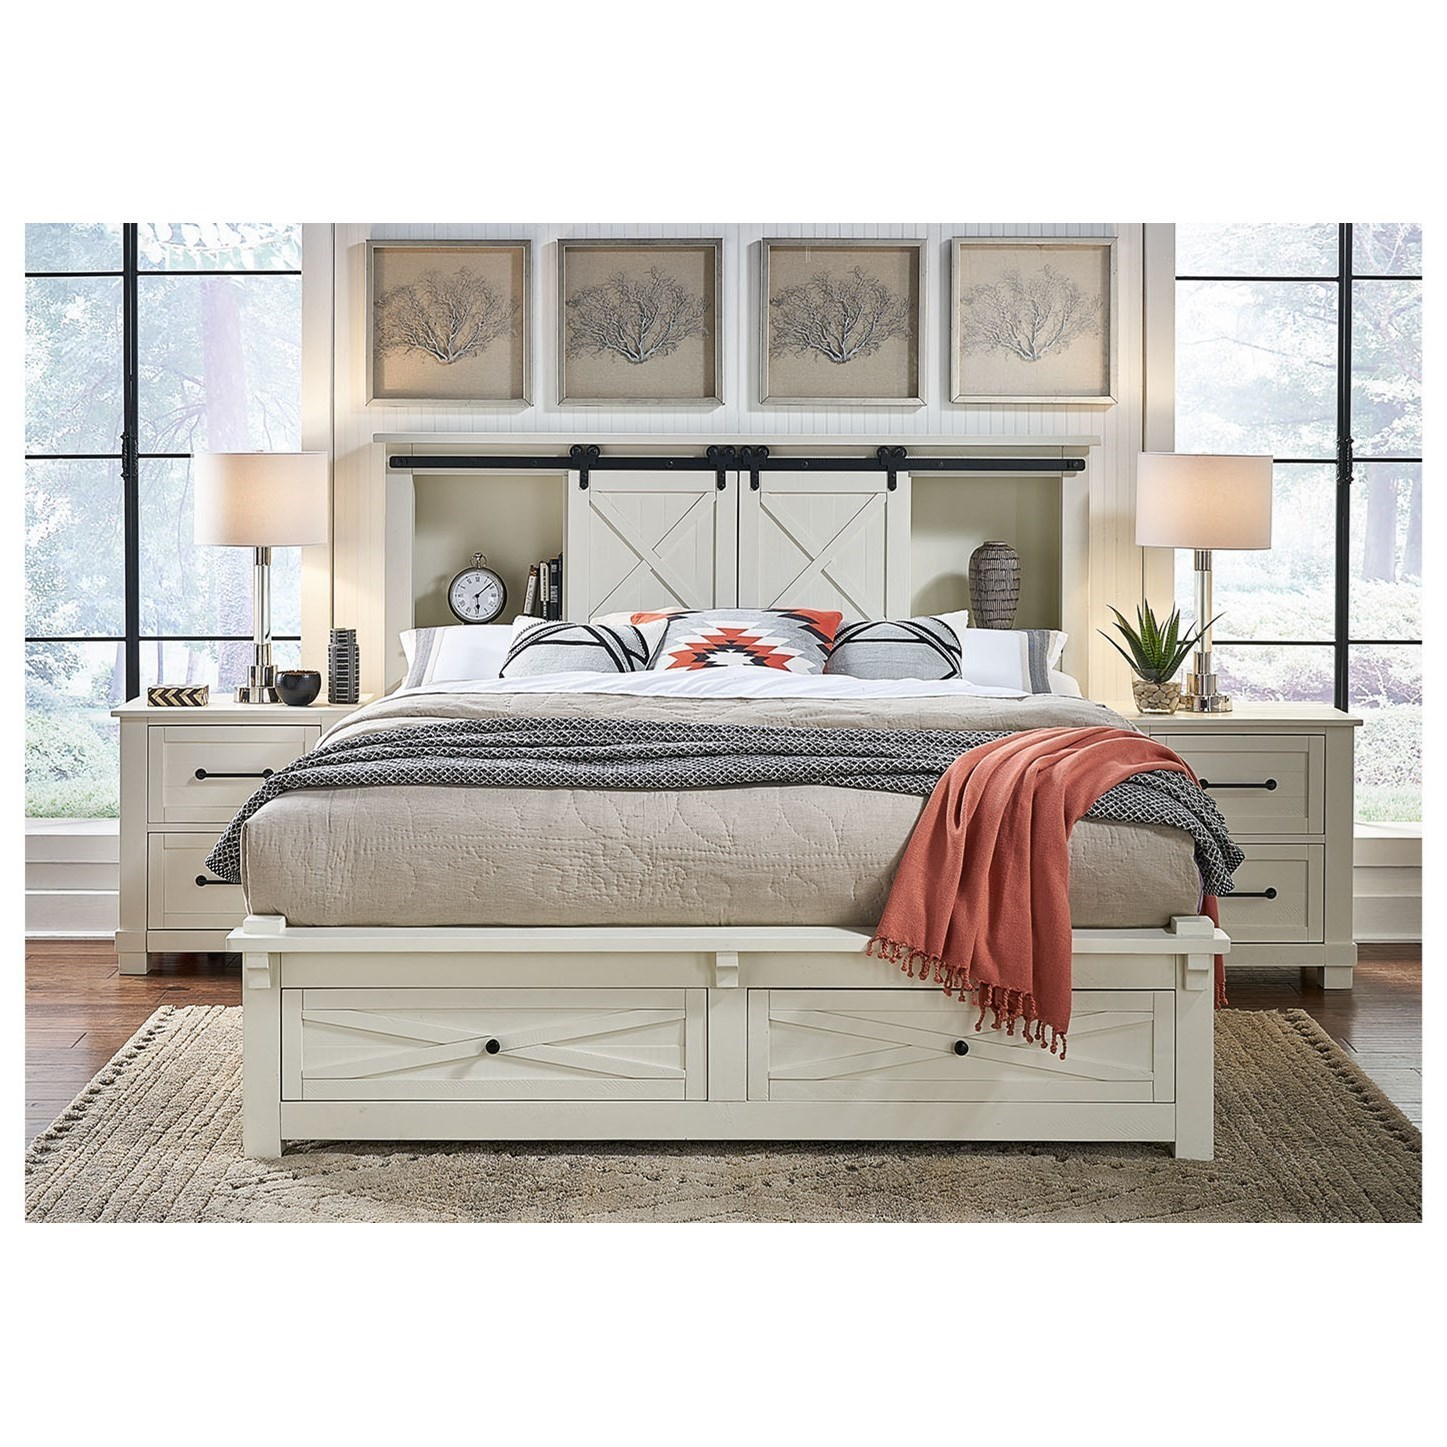 King Bookcase Bed with Footboard Storage